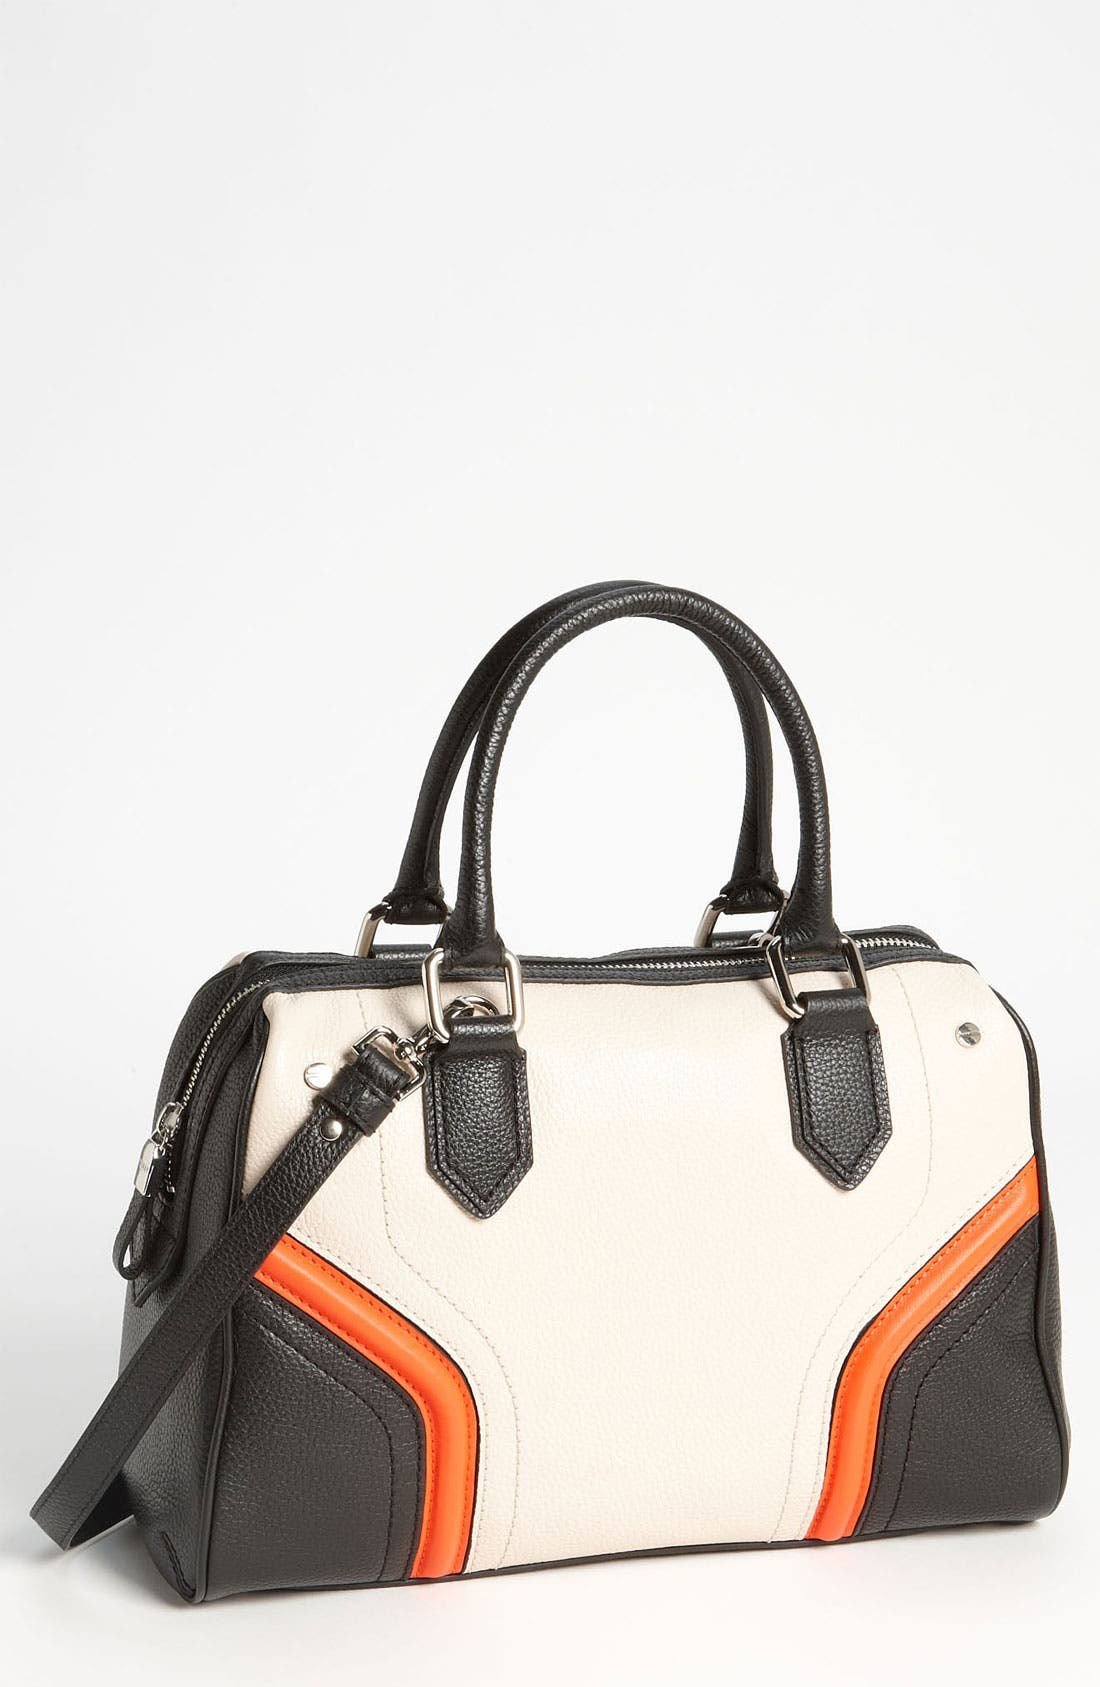 Main Image - Milly 'Zoey' Satchel